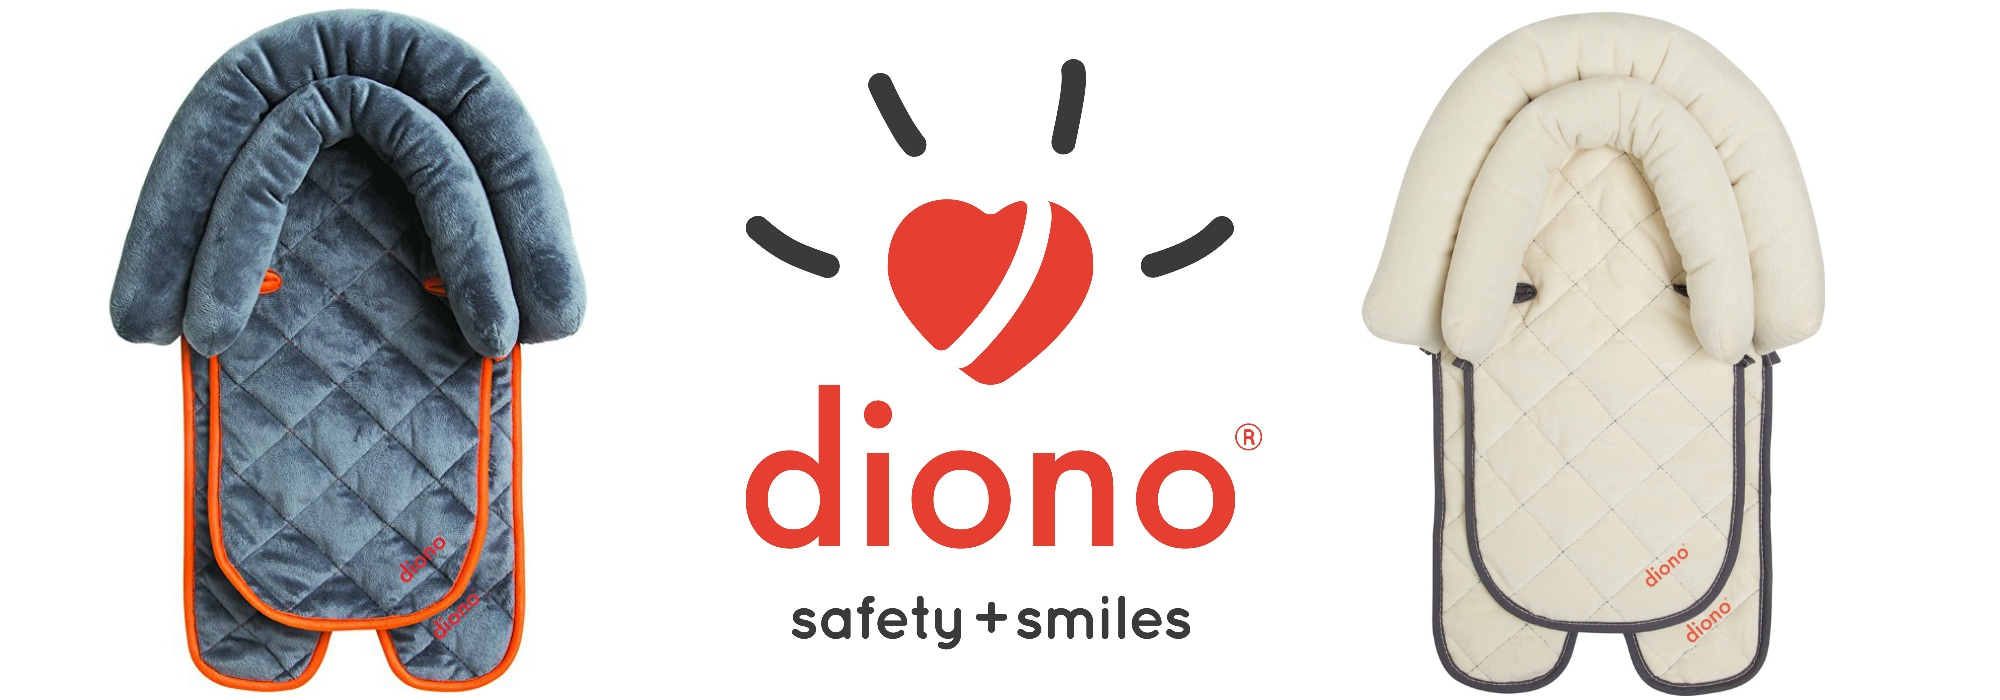 Win a Diono 2-in-1 Head Support Pillow in US Japan Fam's $500 value